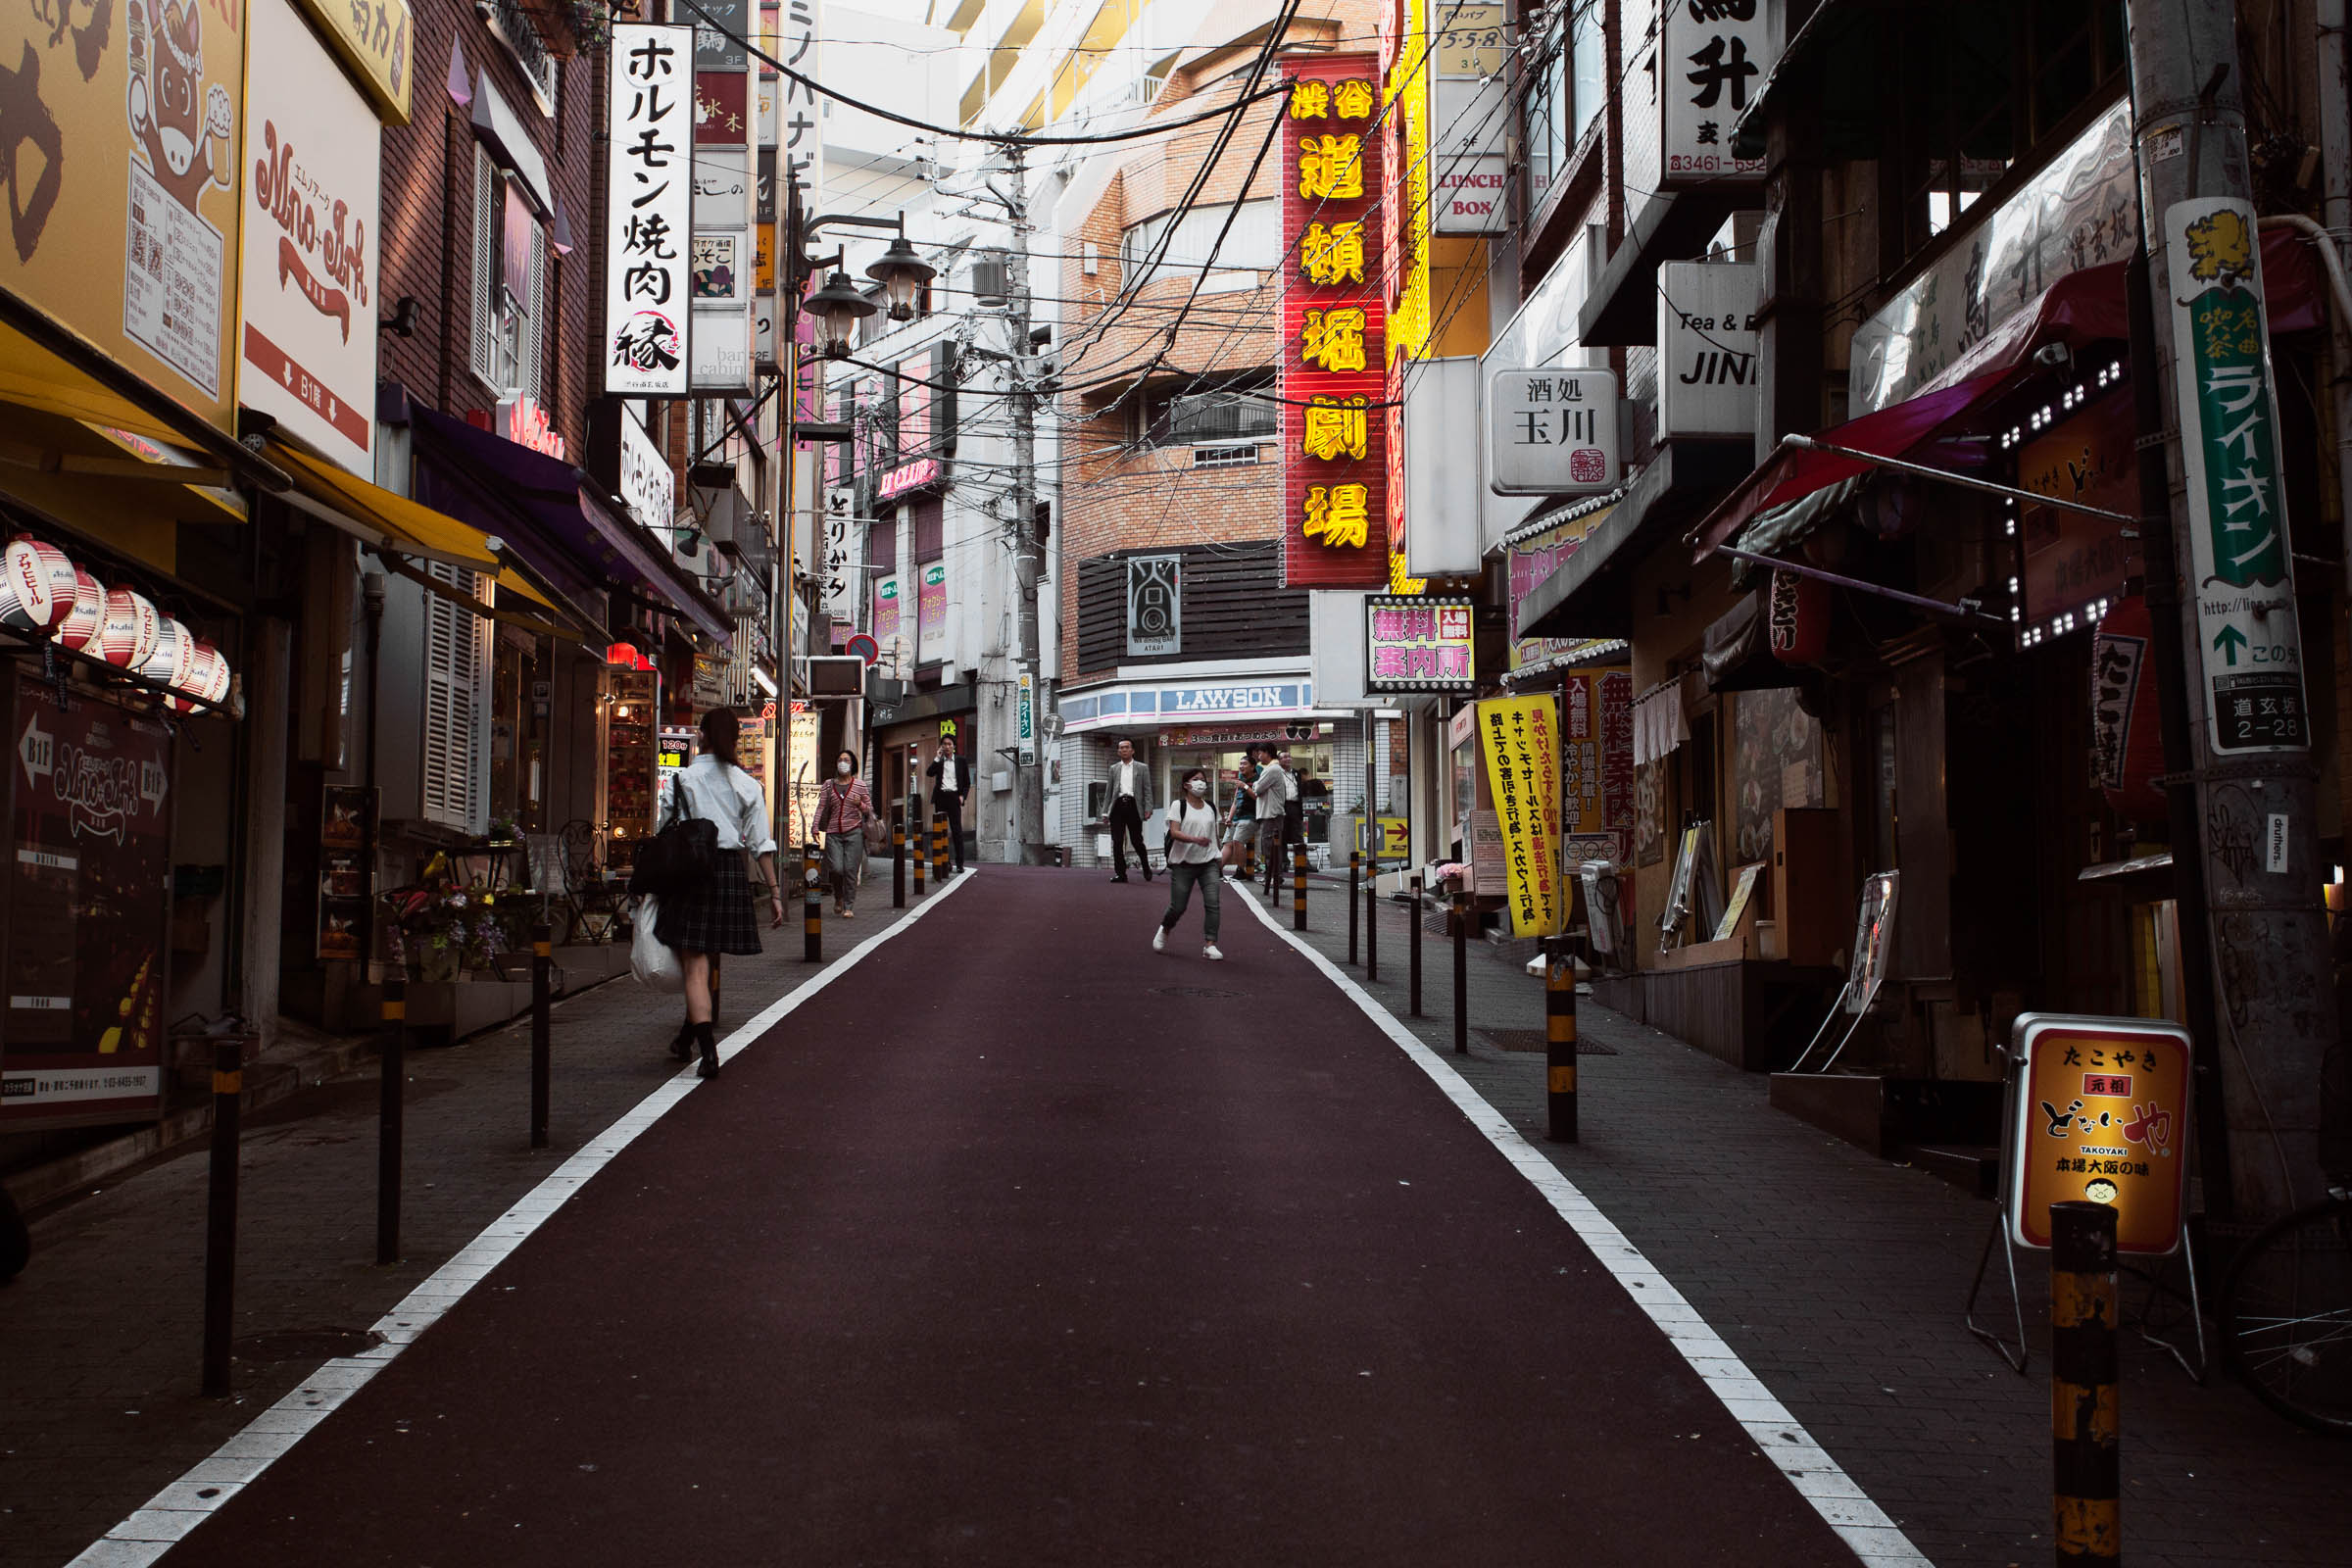 Chacon Images_Japan_Web-44.jpg